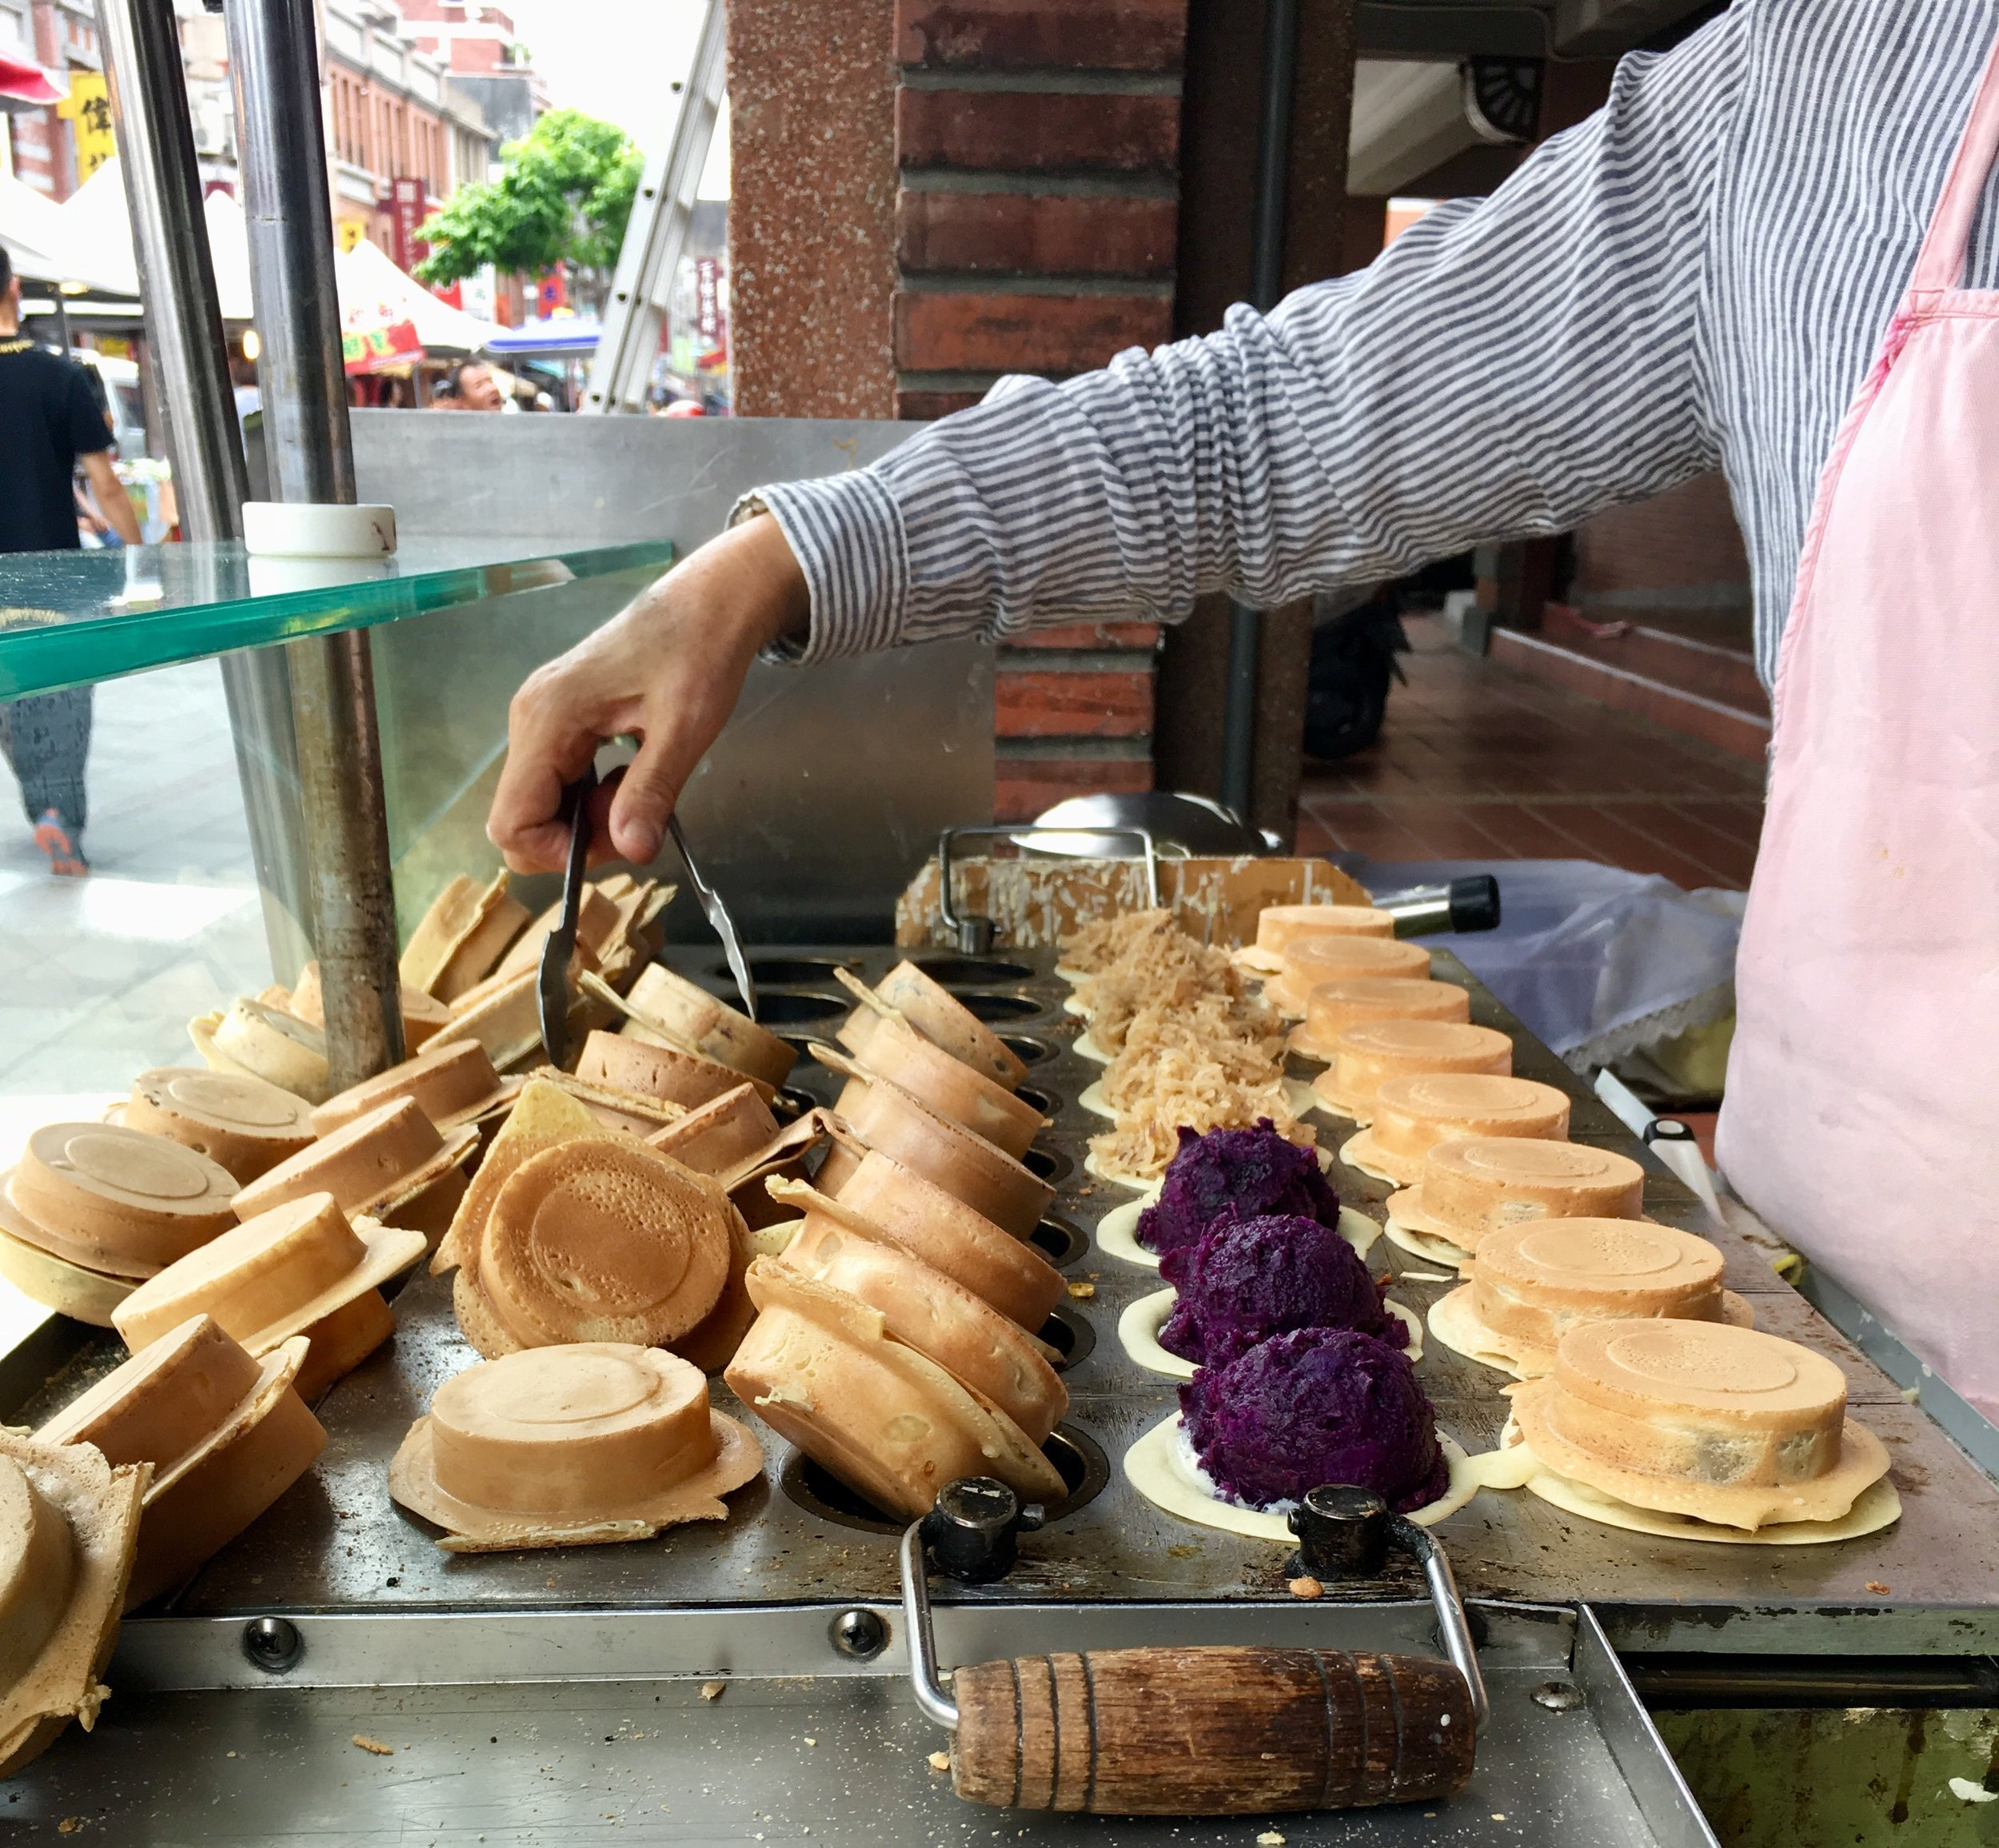 Taiwan has some of the best street food!